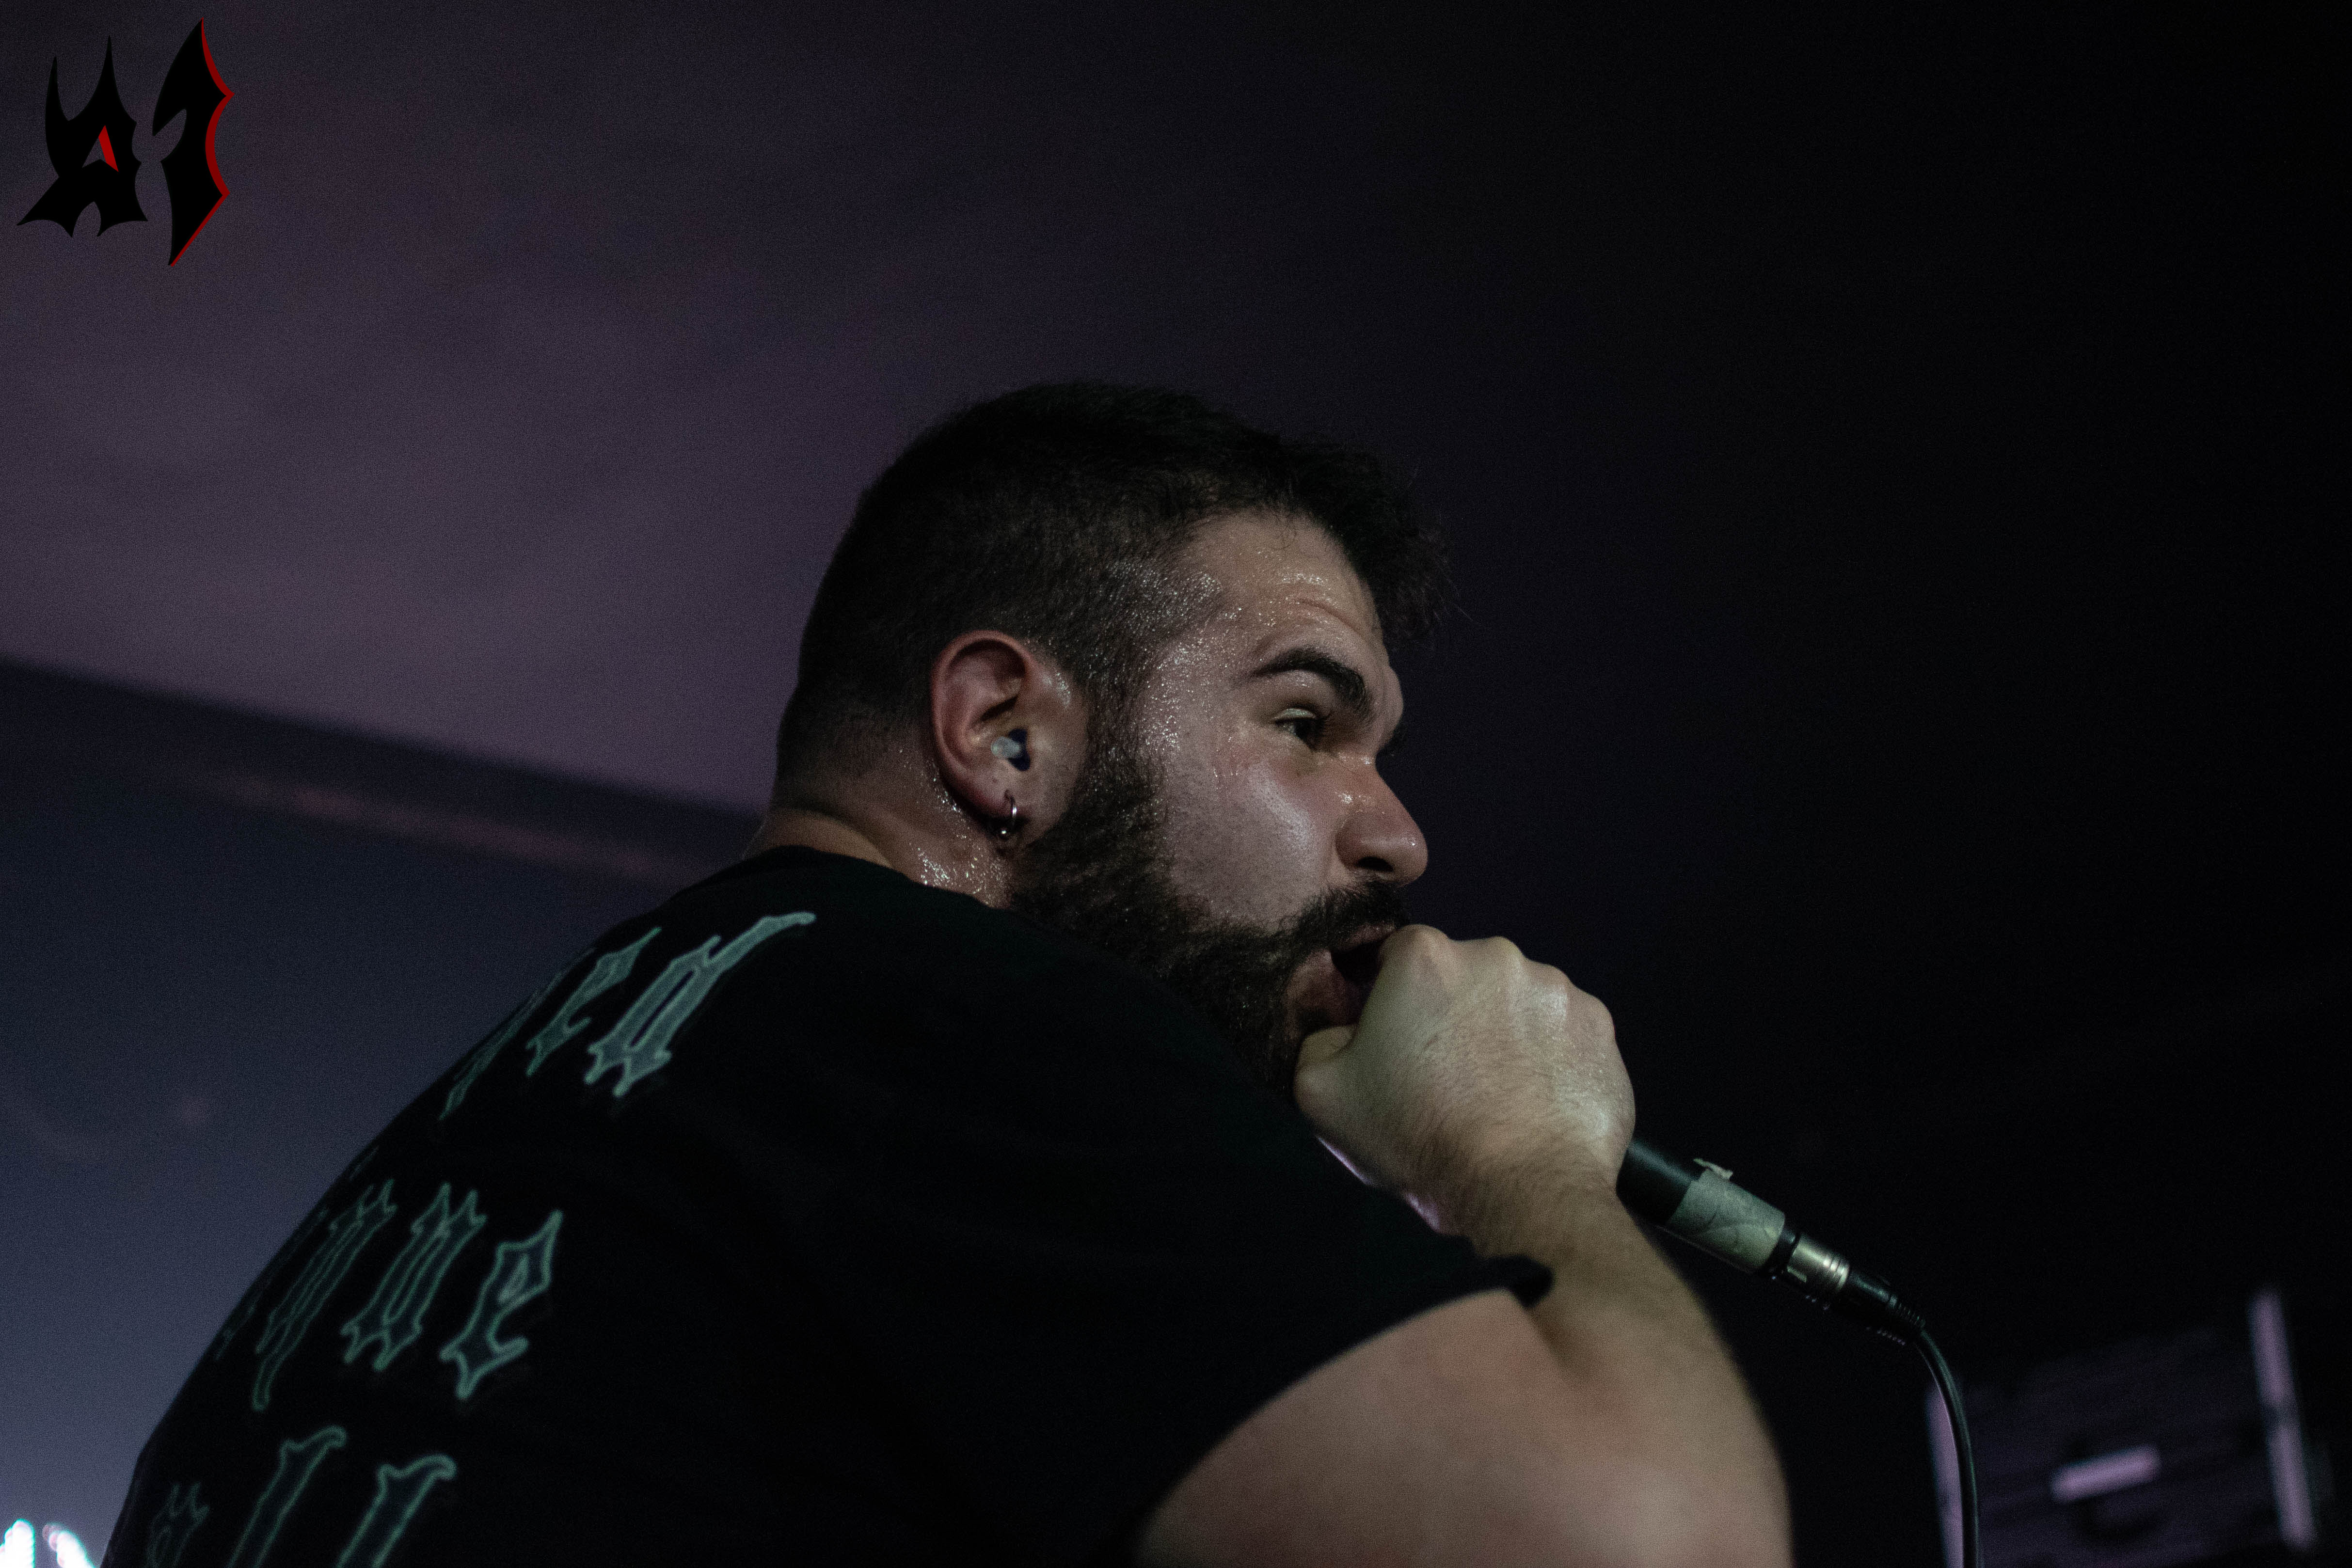 Defeated Sanity - 6